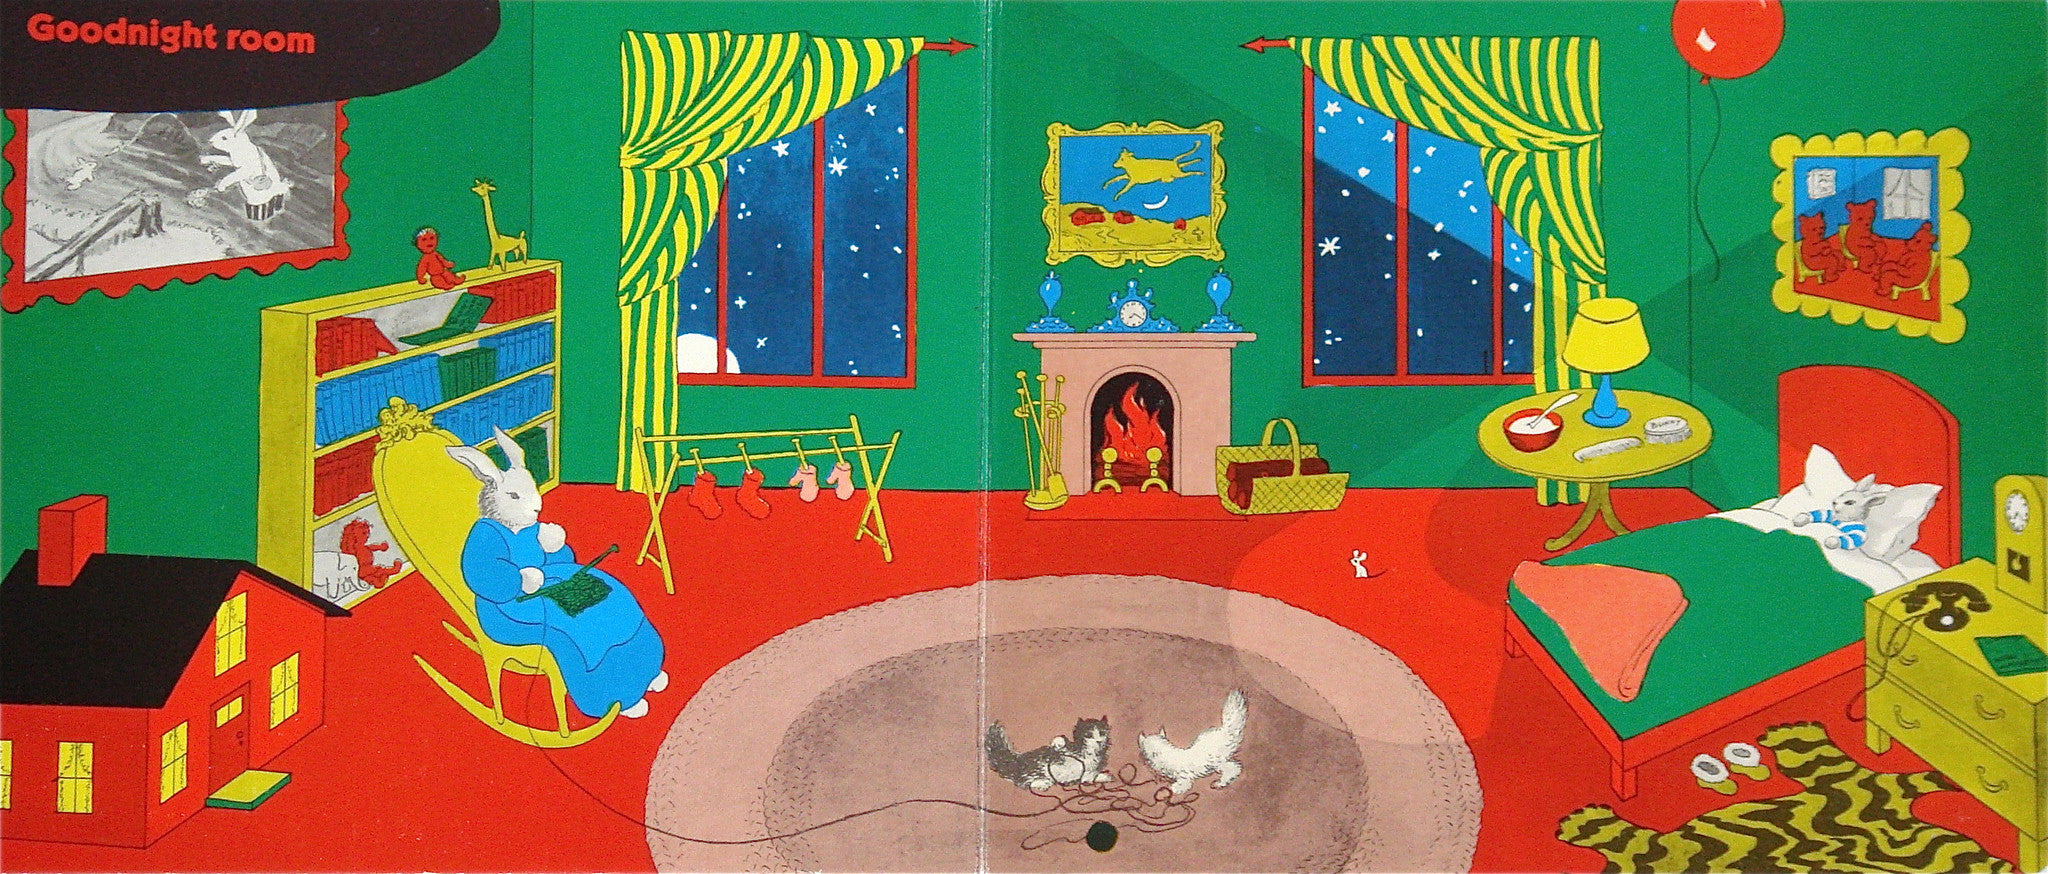 LITTLEREADER GIFT SET - GOODNIGHT MOON – ArtStar